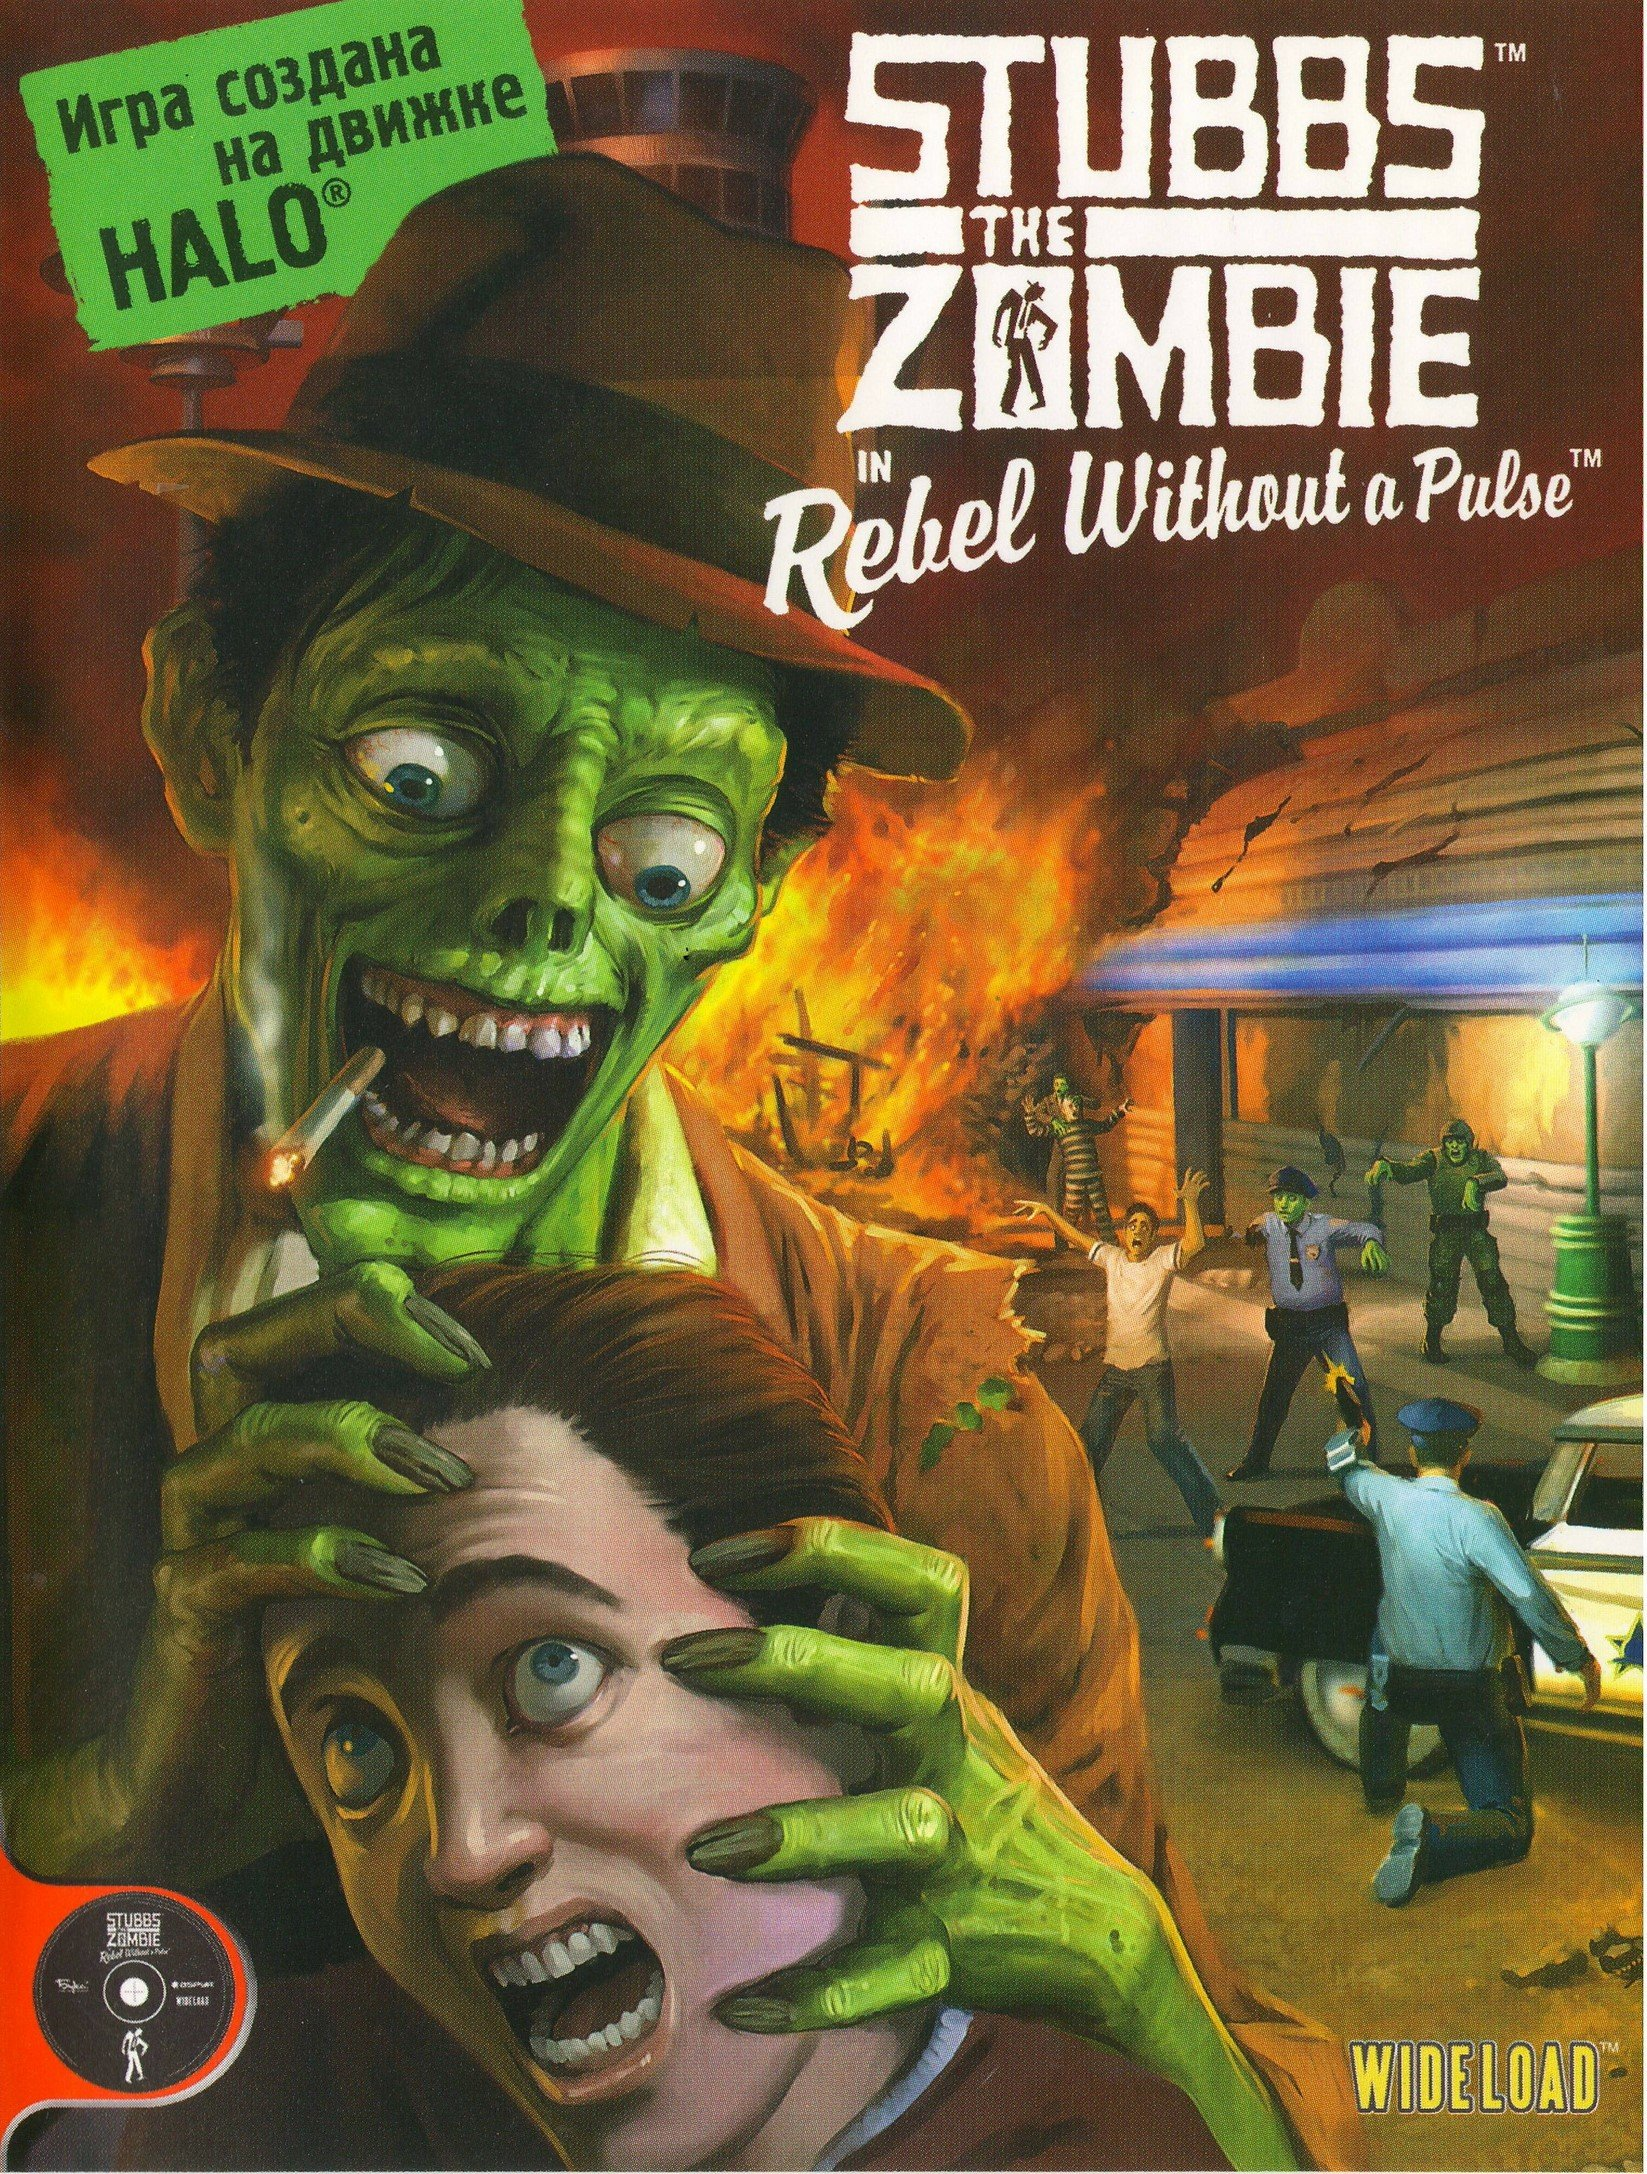 Stubbs the Zombie in Rebel Without a Pulse v.1.02 [Бука] (2005) PC | Лицензия